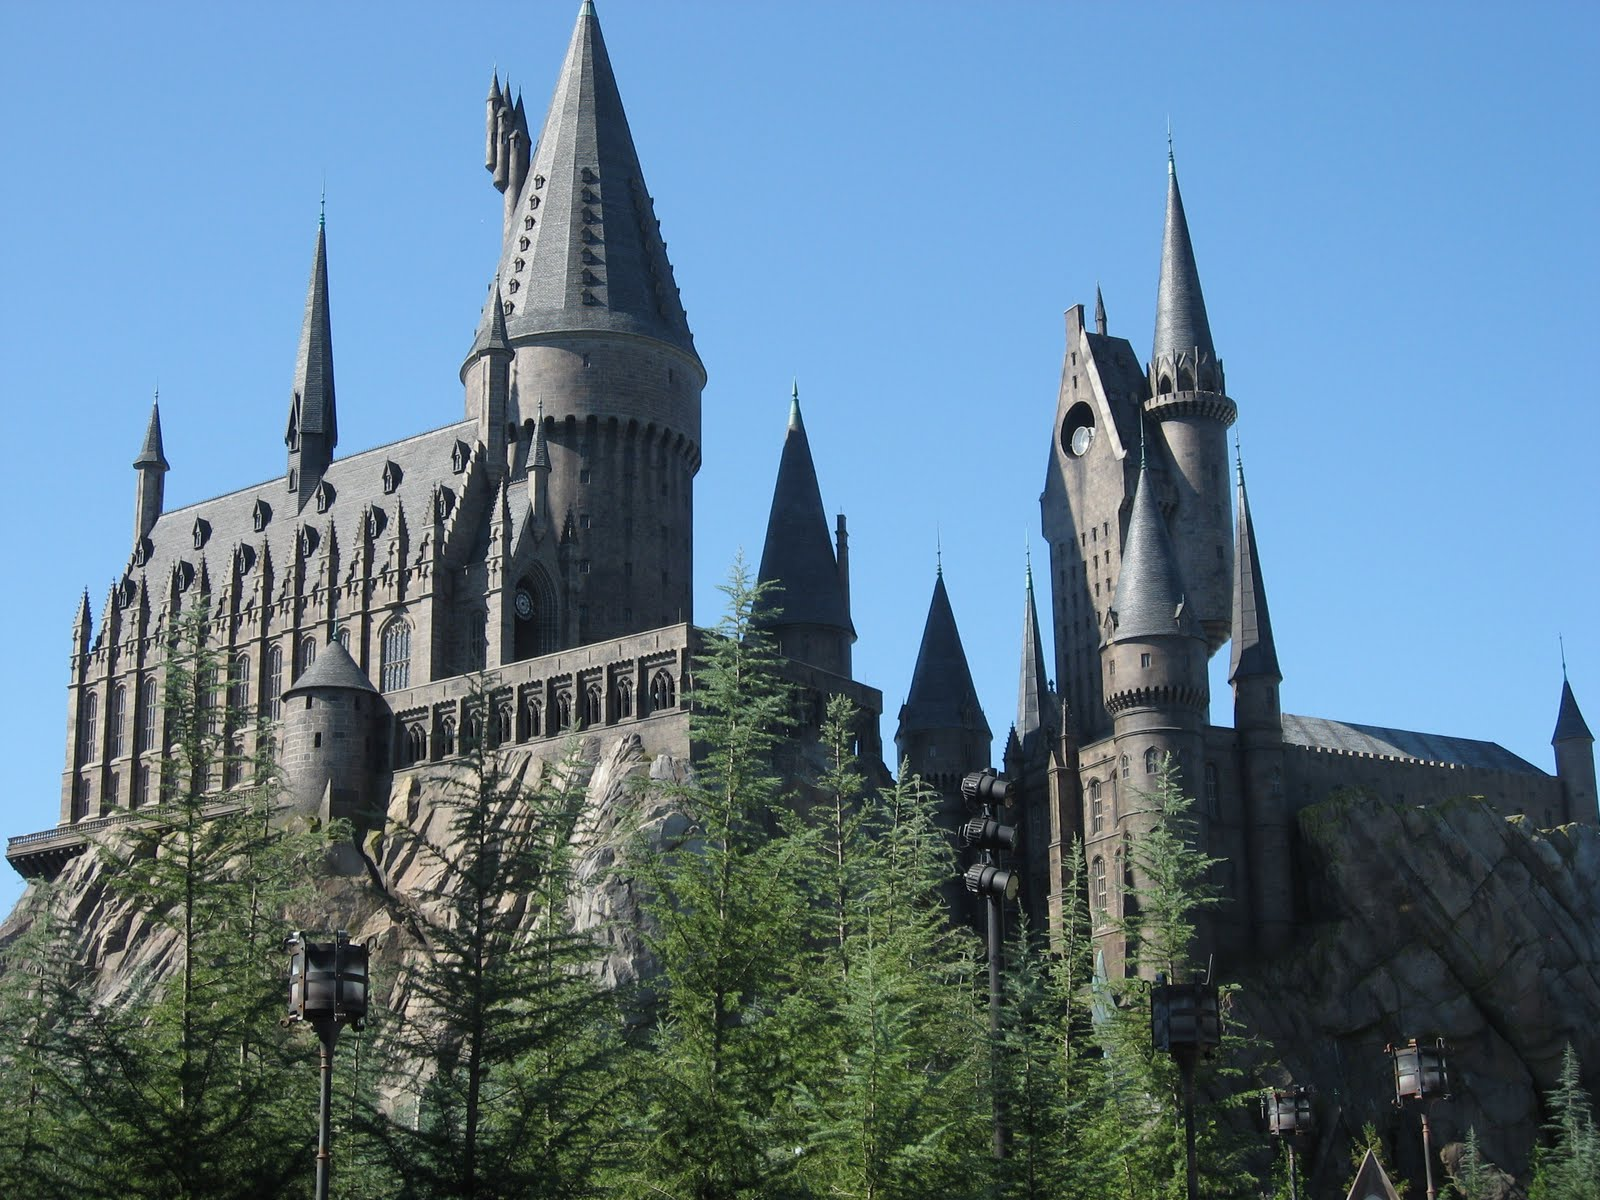 Harry potter roller coaster - photo#16